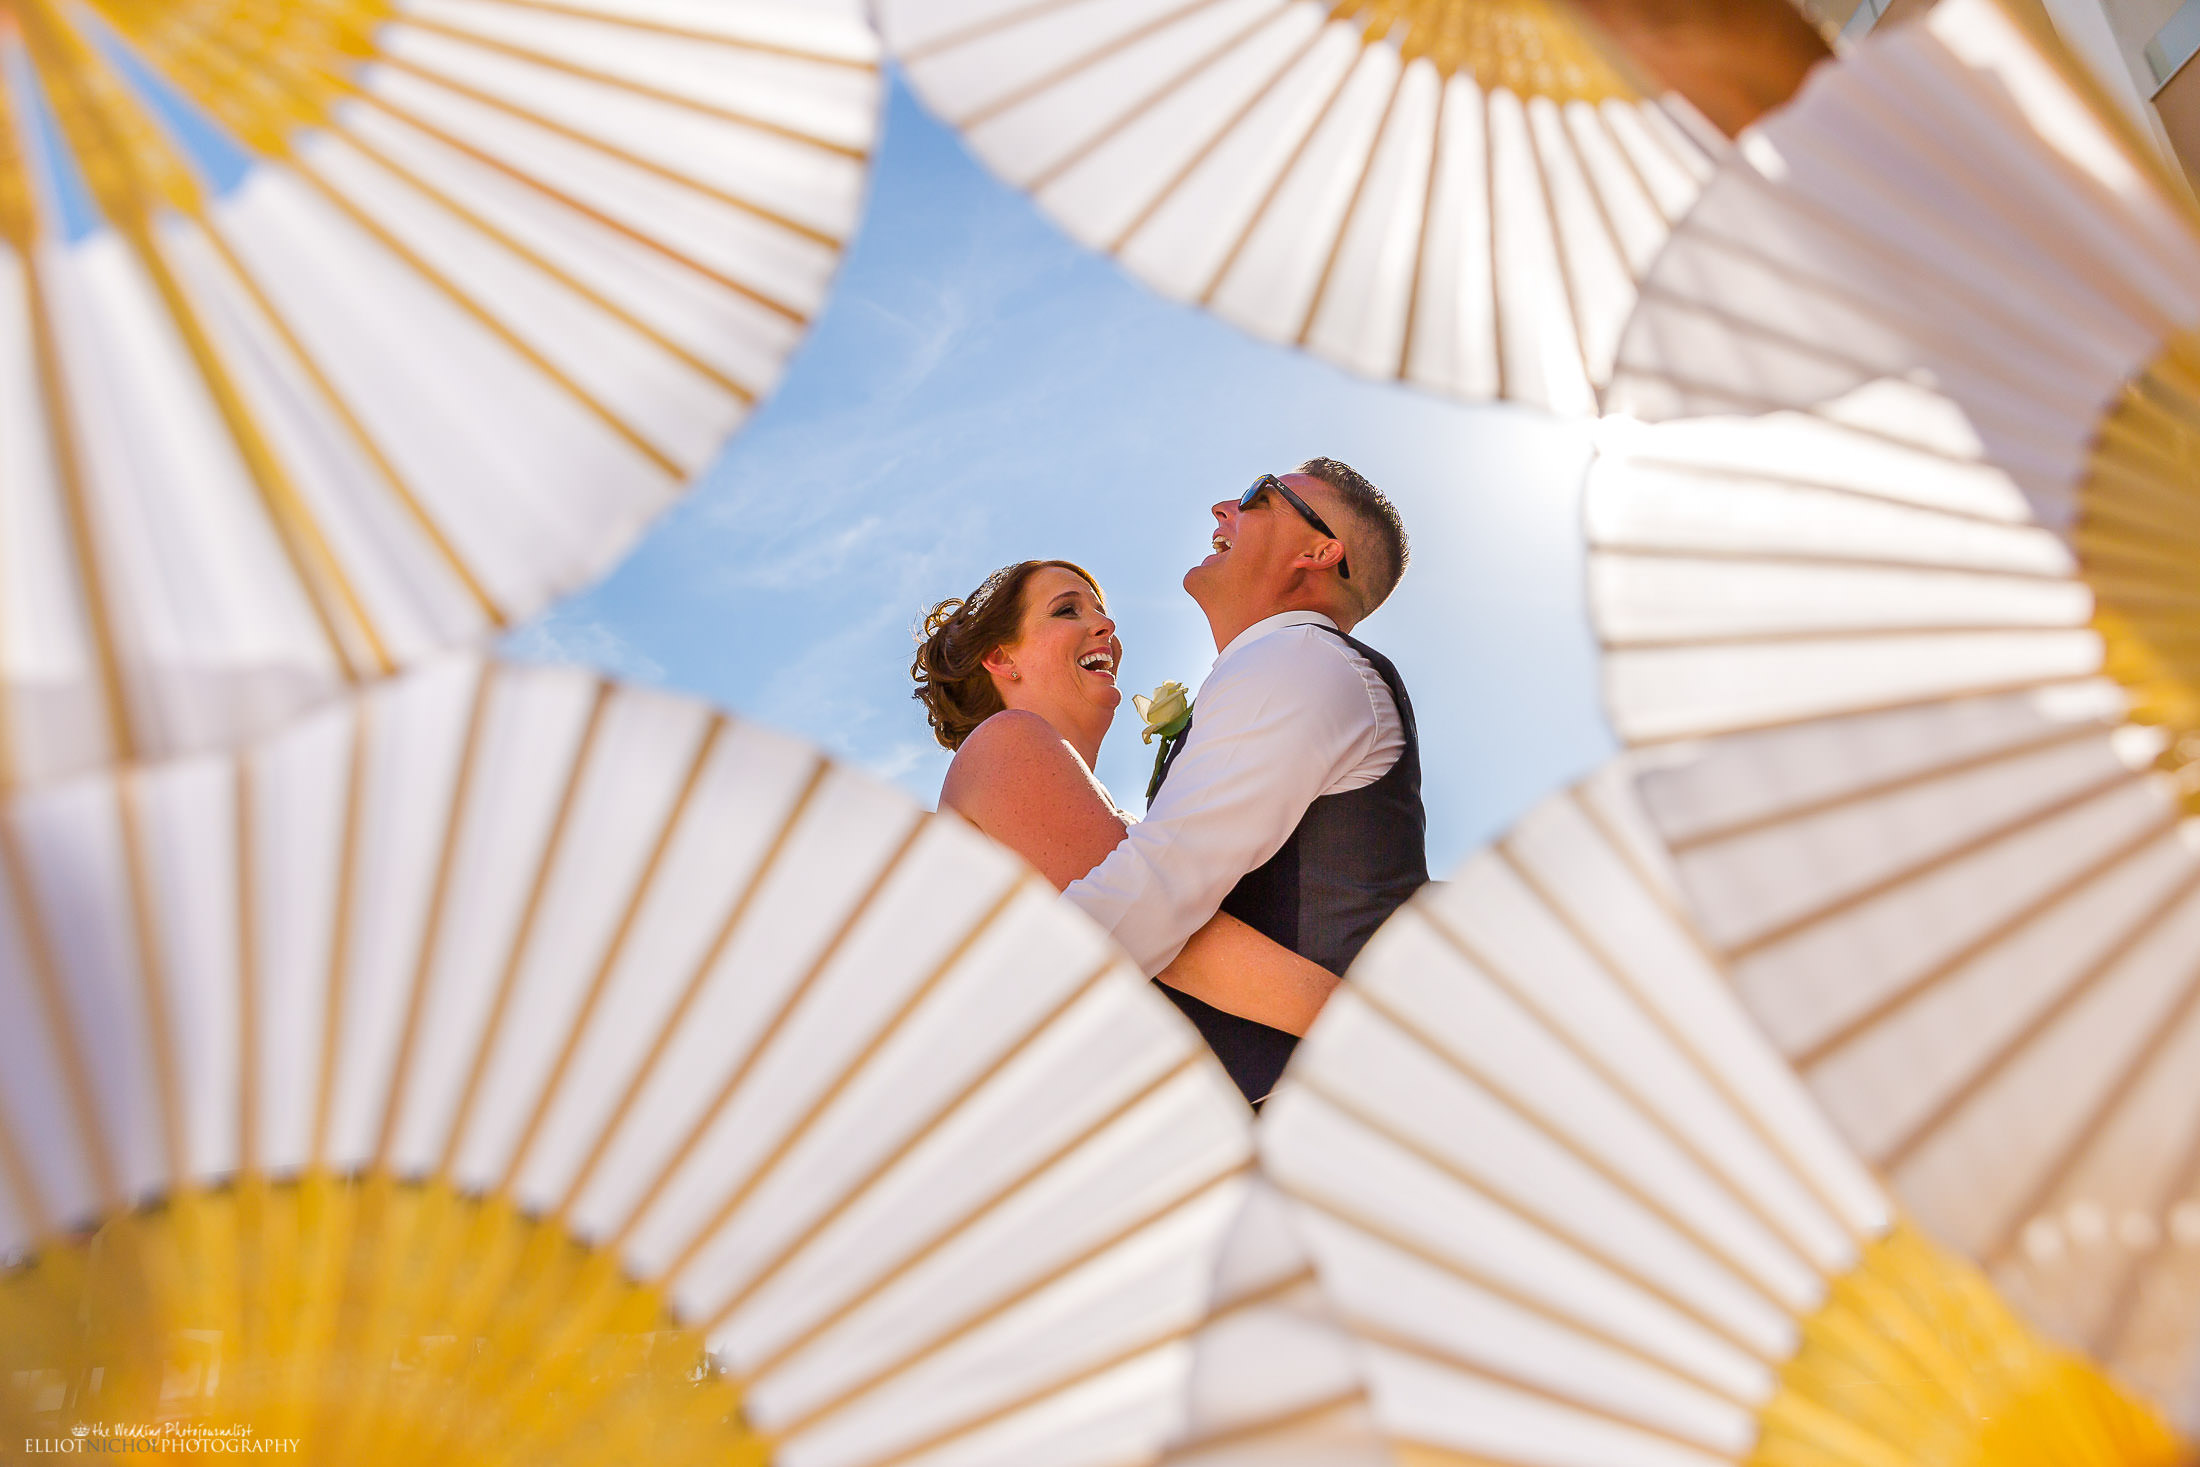 Fun creative portrait of the bride and groom using fans. Photo by Elliot Nichol Photography.